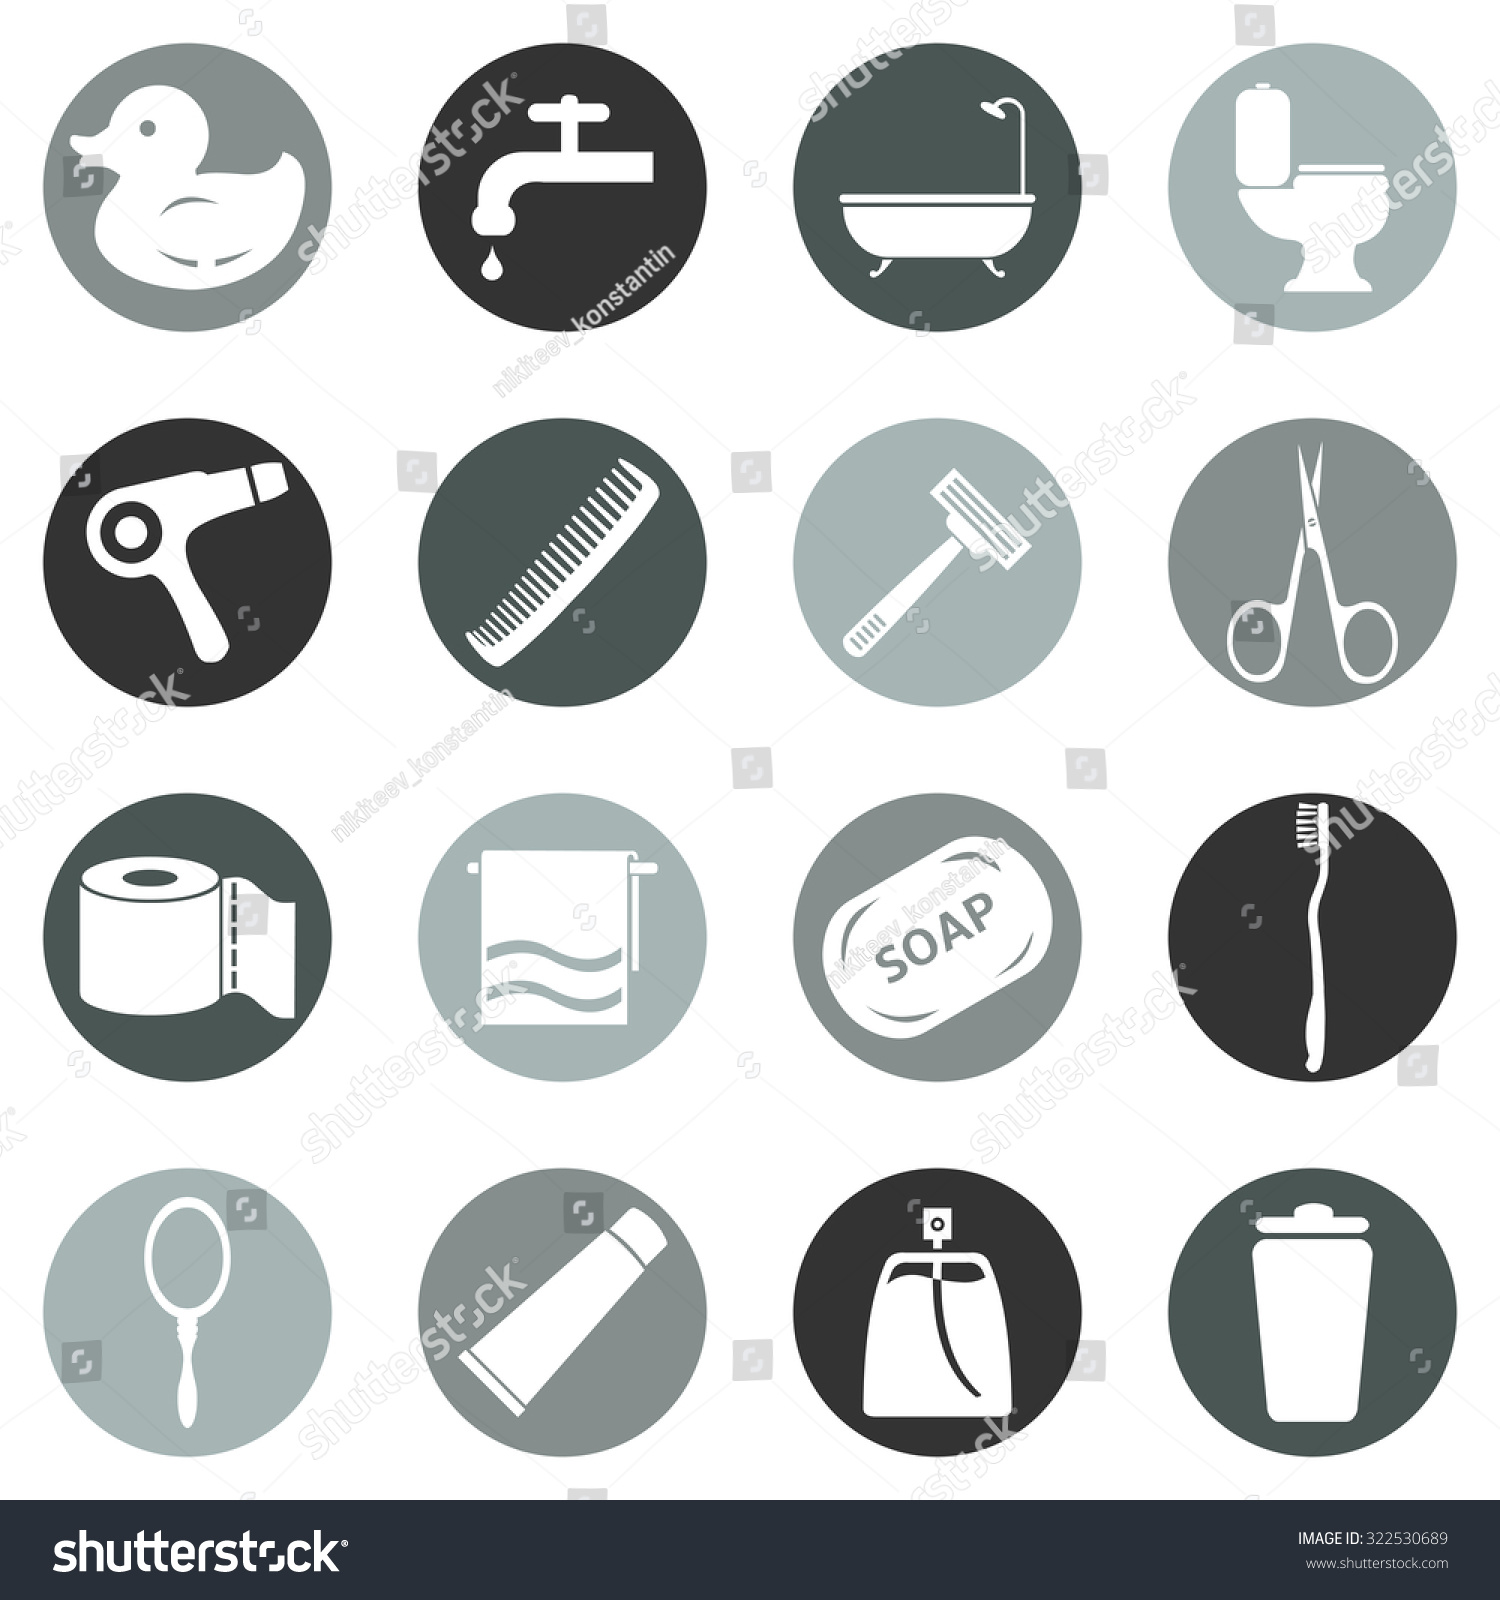 Toilet signs vector set stock images image 36323784 - Vector Set Bathroom Hygiene Icons Stock Vector 322530689 Stock Vector Vector Set Of Bathroom And Hygiene